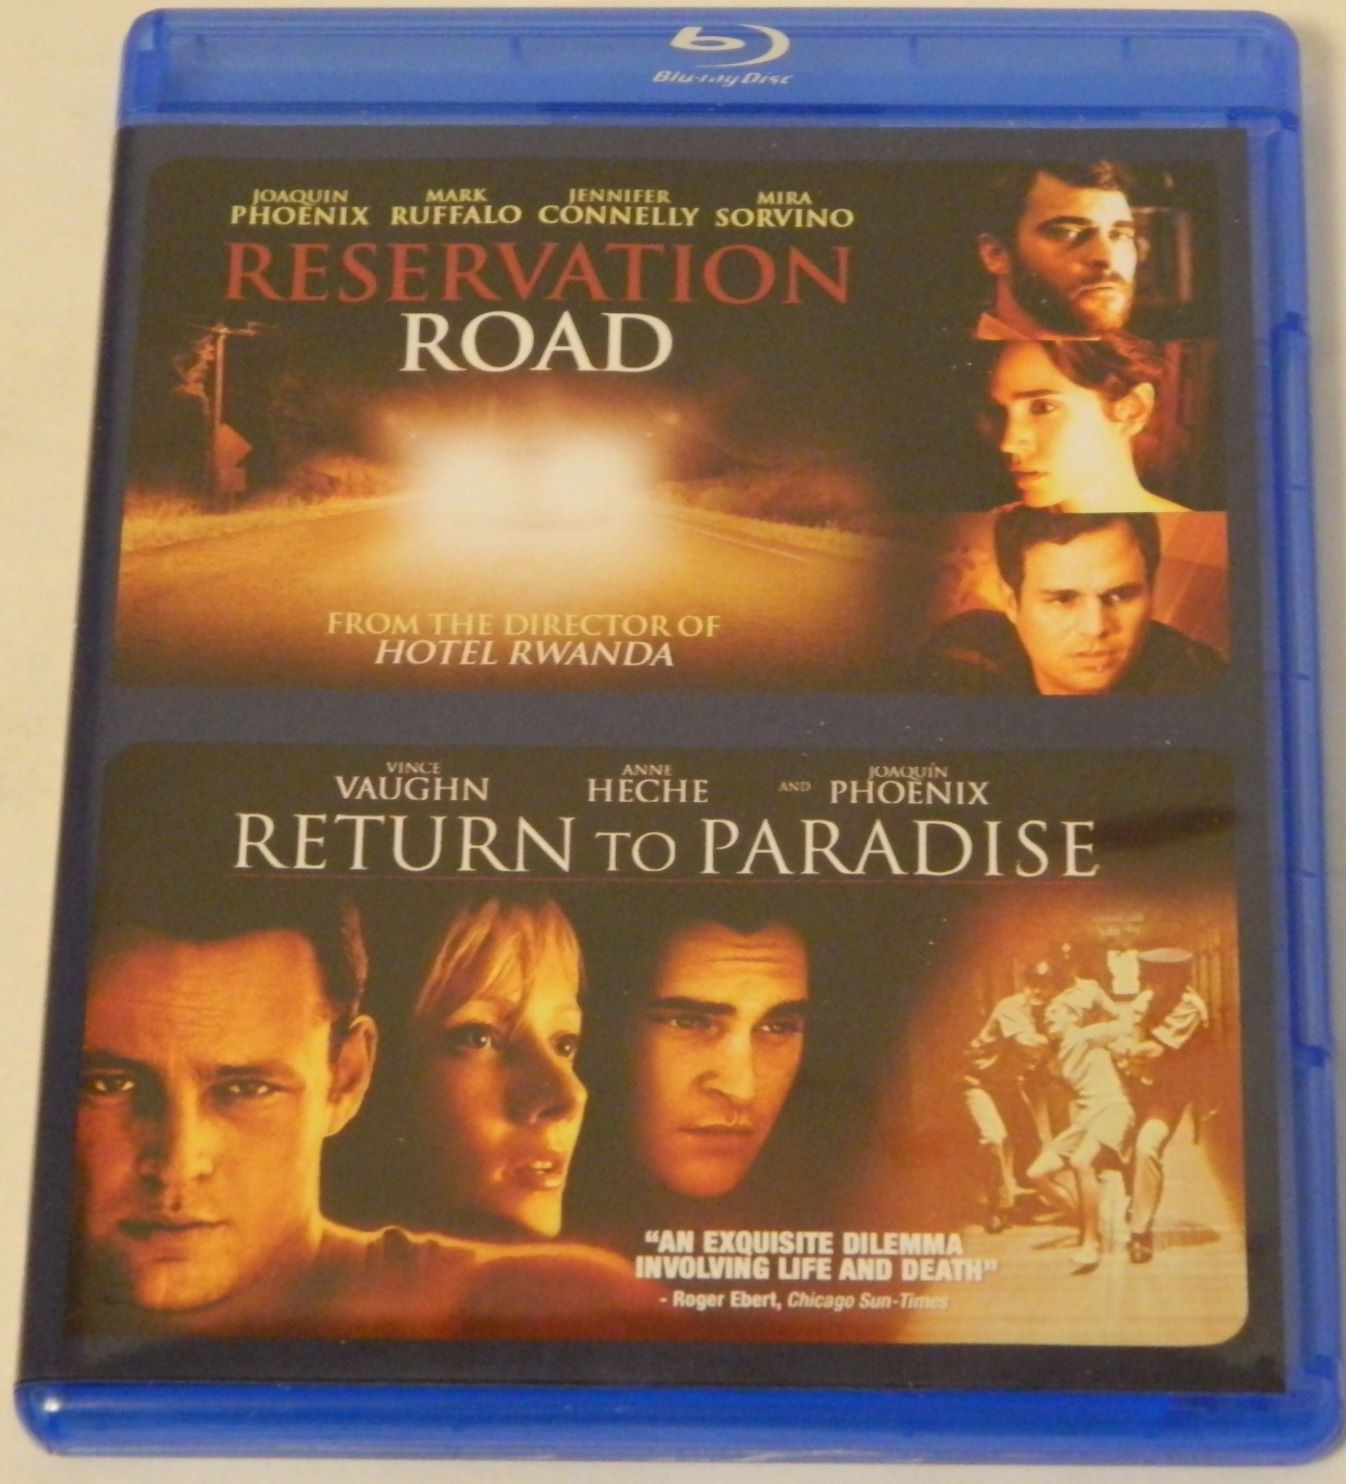 Reservation Road Return to Paradise Double Feature Blu-ray